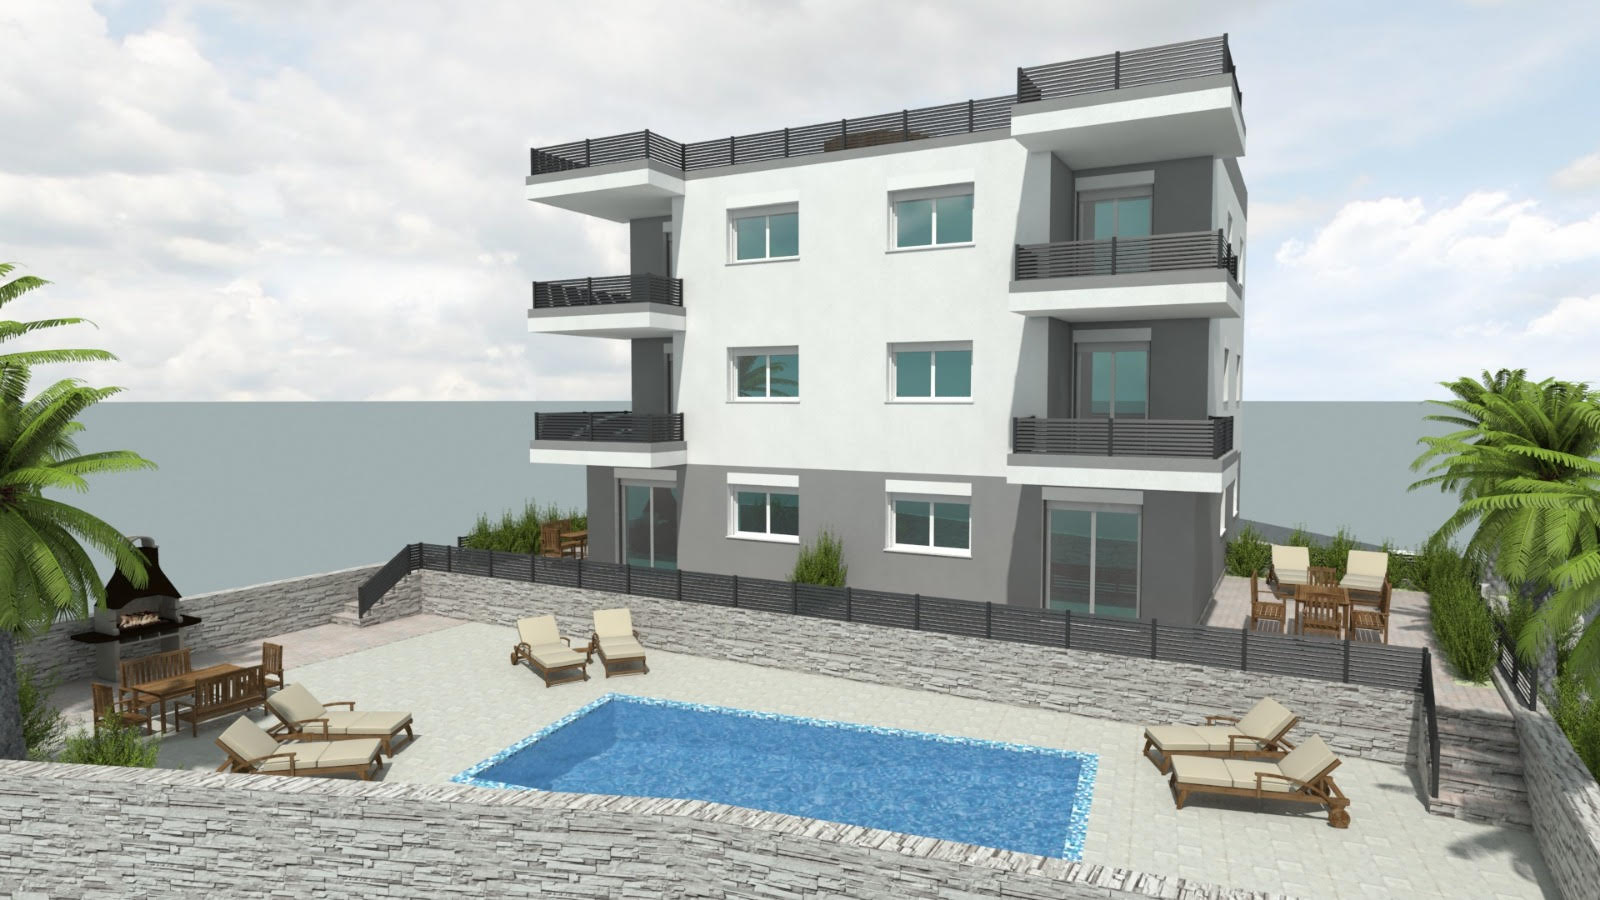 Island Čiovo – apartments with sea view for sale